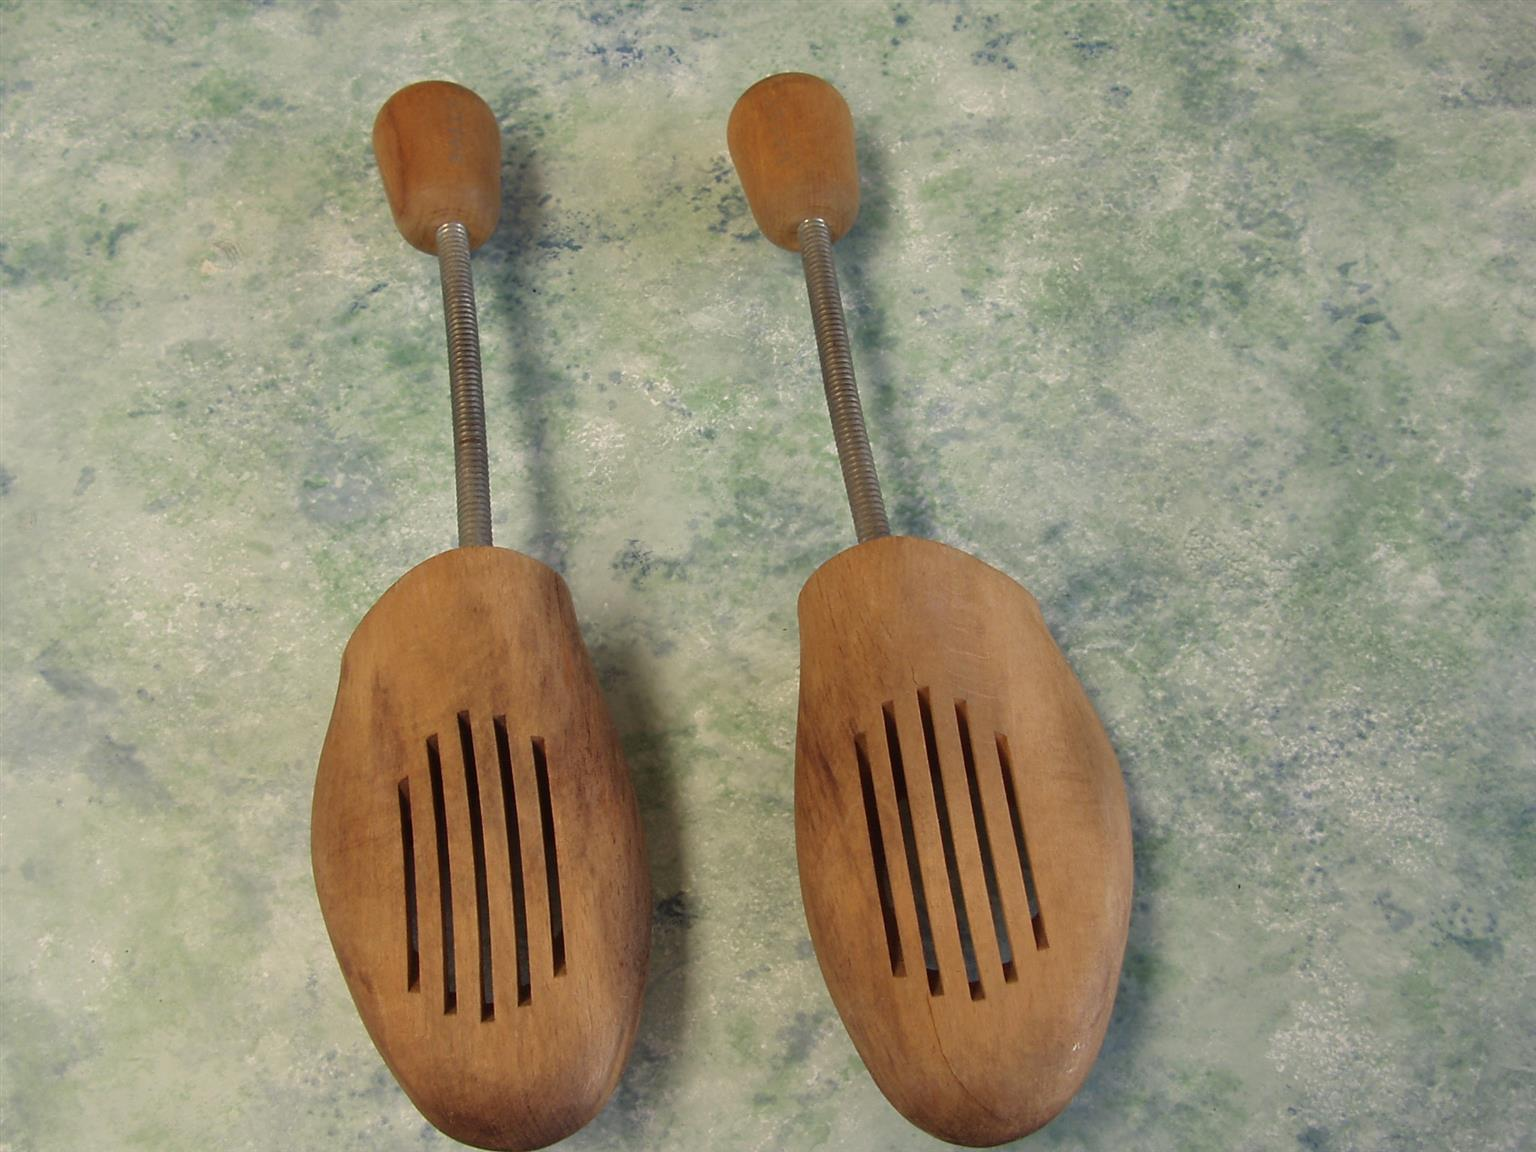 Pair of vintage wooden shoe stretchers with metal springs